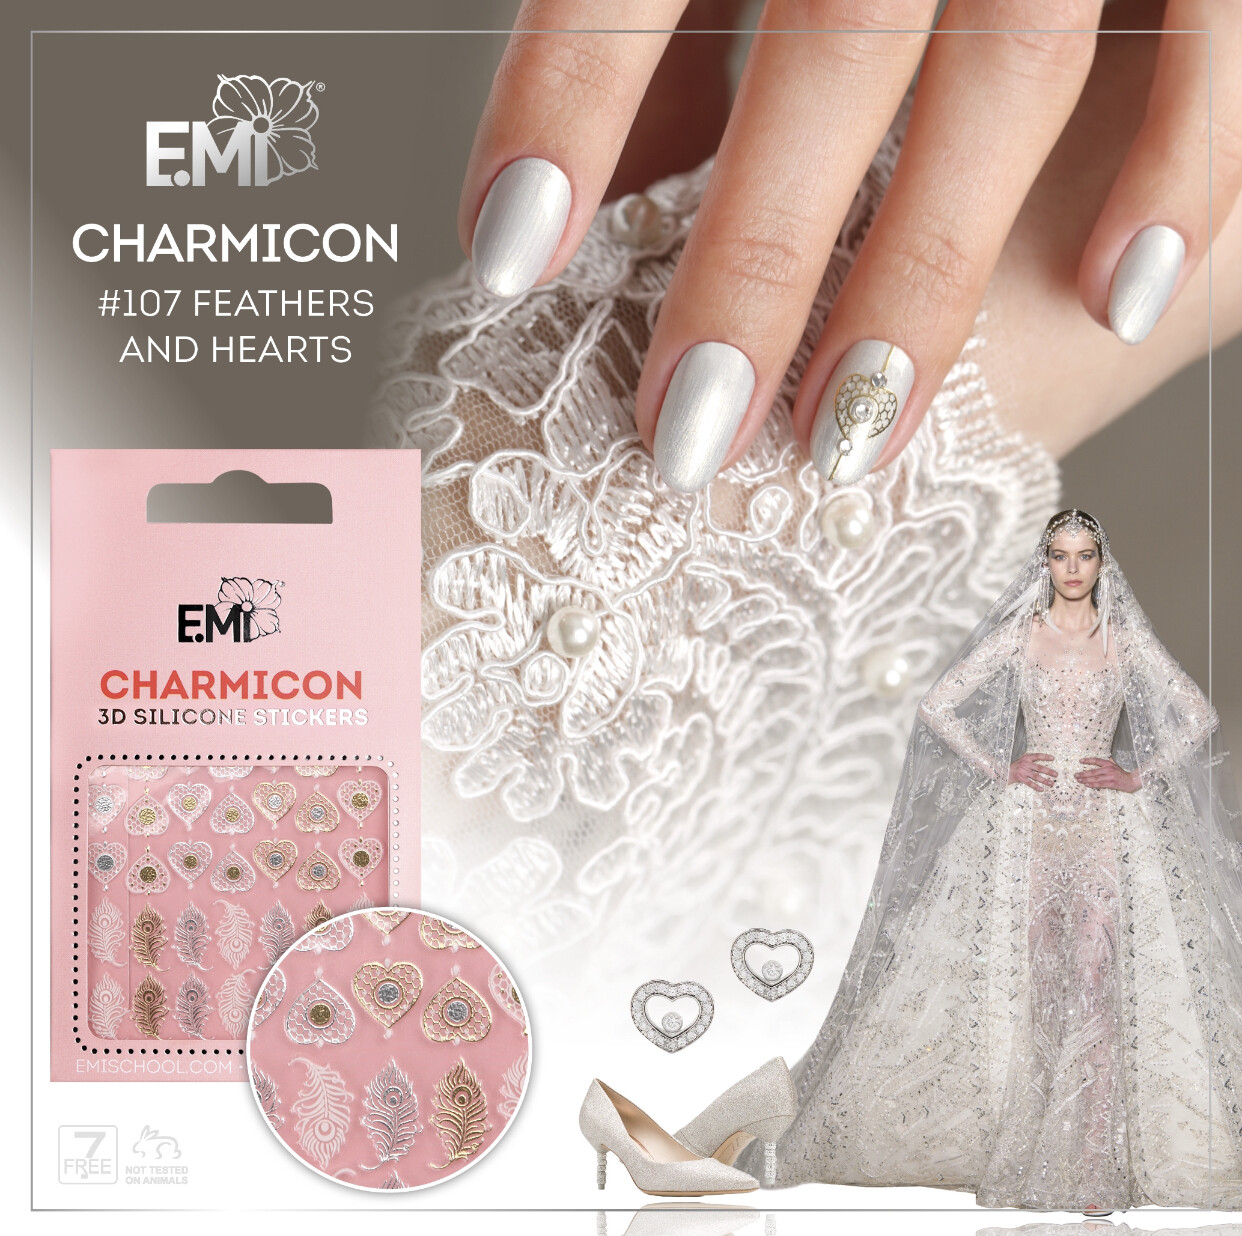 Charmicon Silicone Stickers #107 Feathers and Hearts